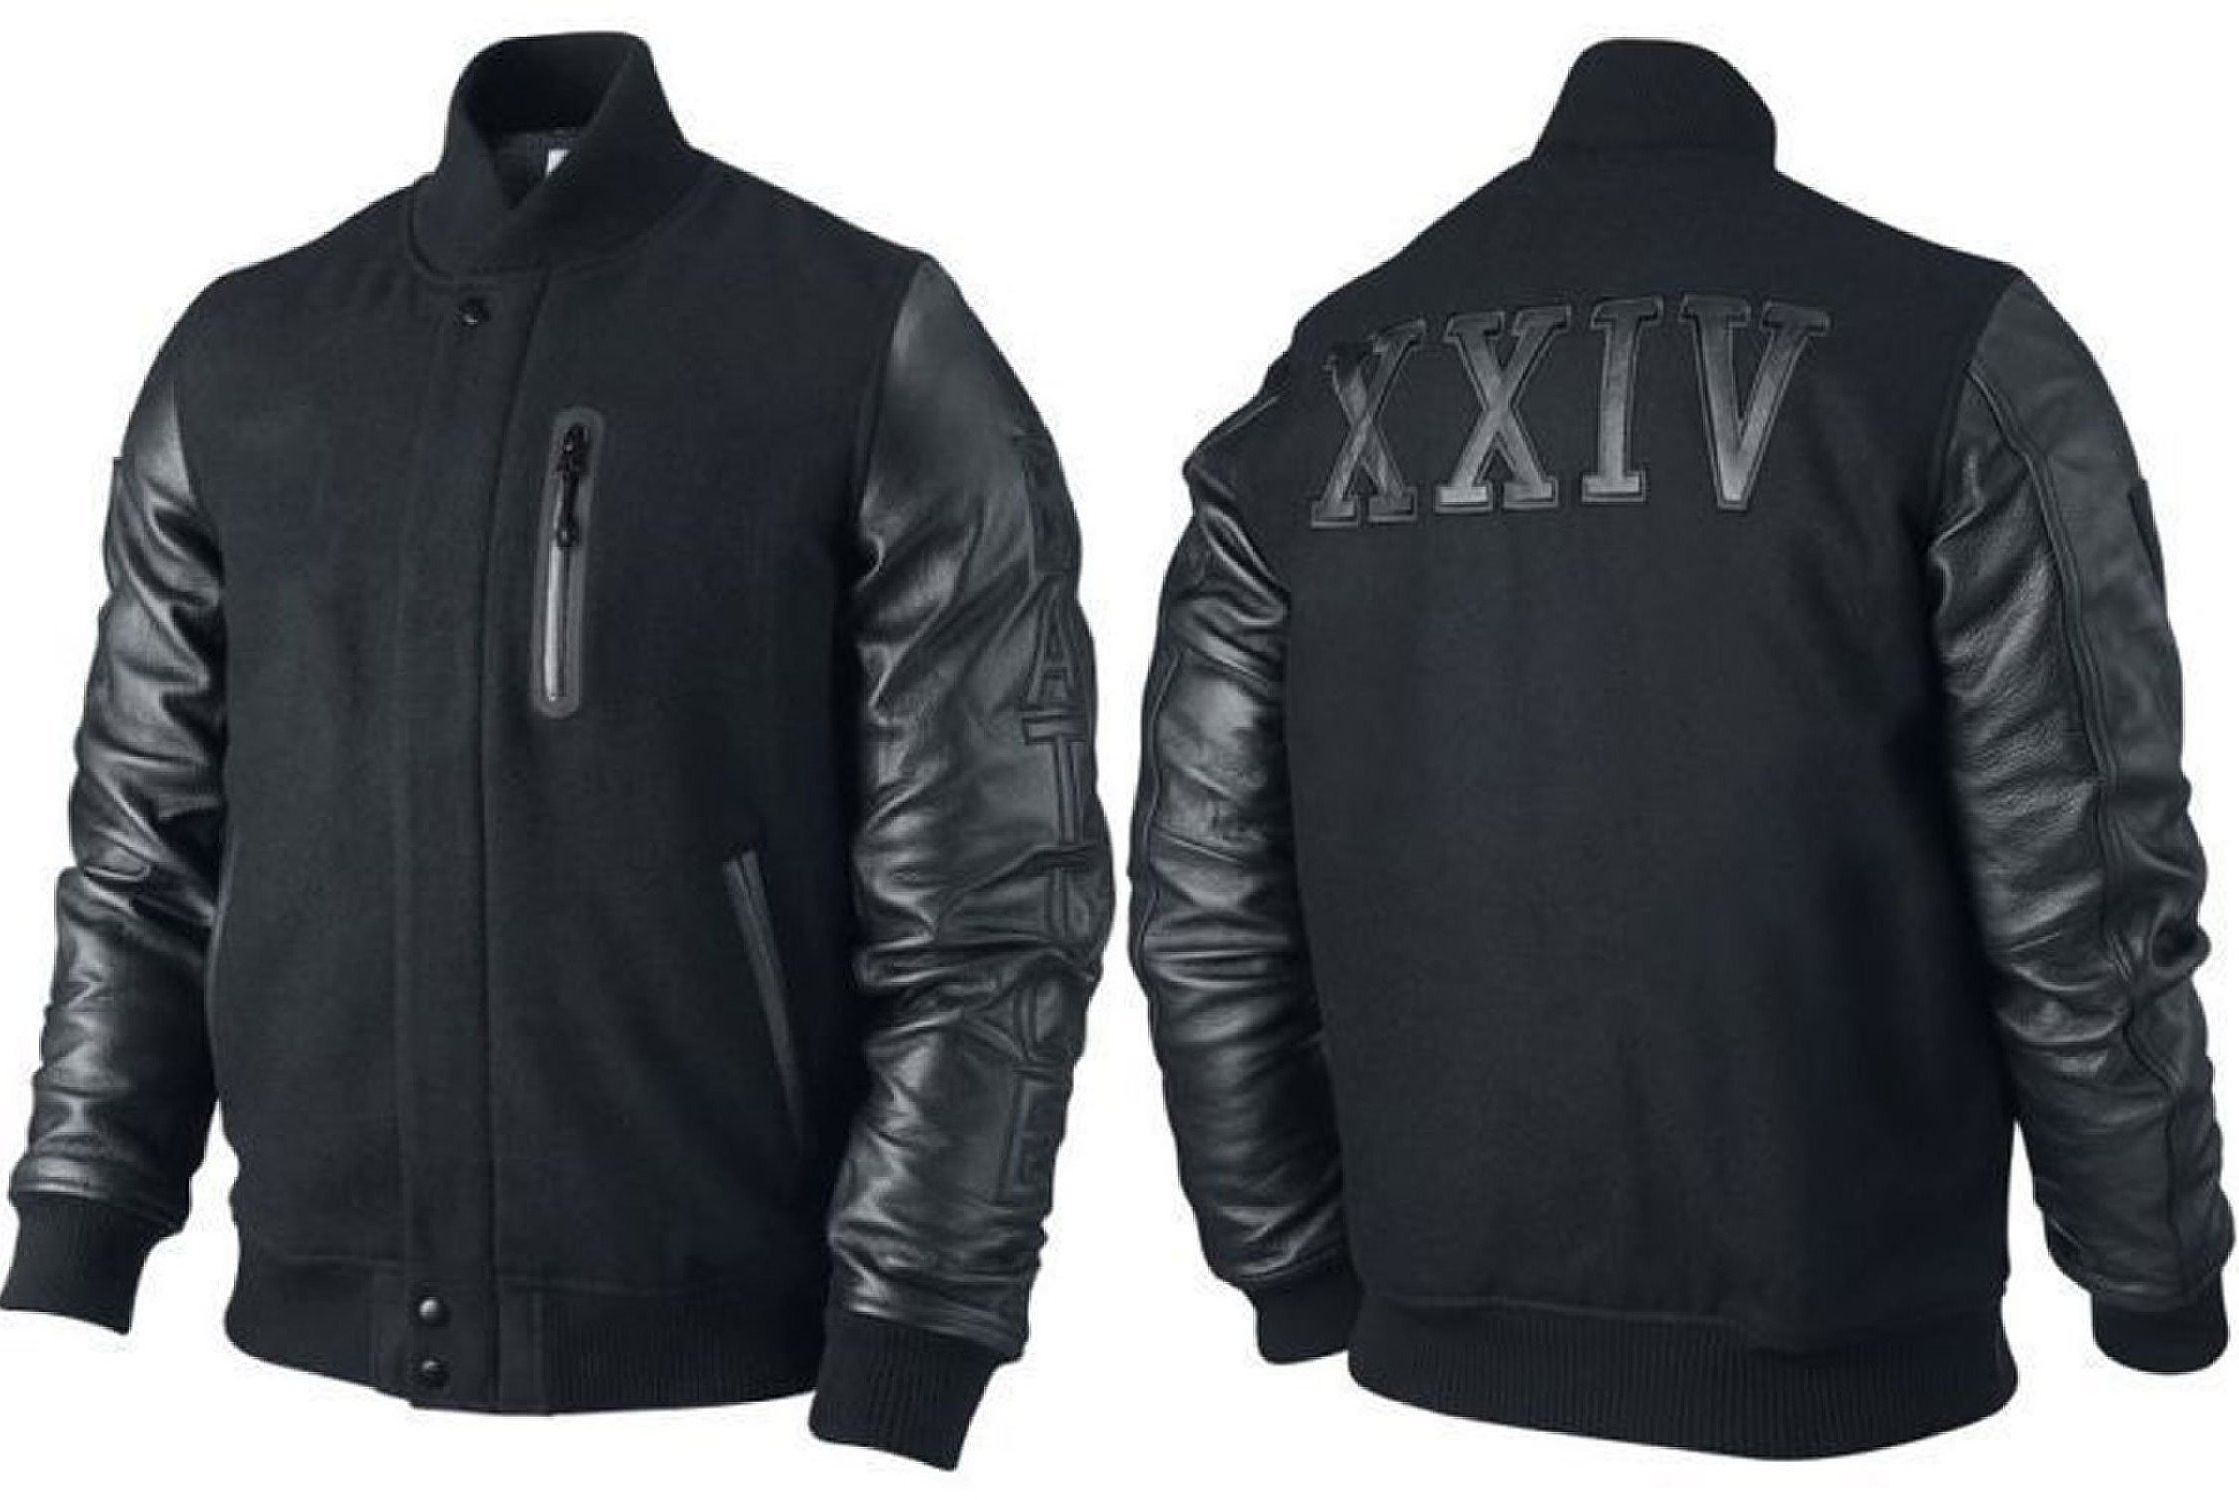 bb52e95d012 Top Leather Factory Created Michael B Jordan KOBE Destroyer XXIV ...